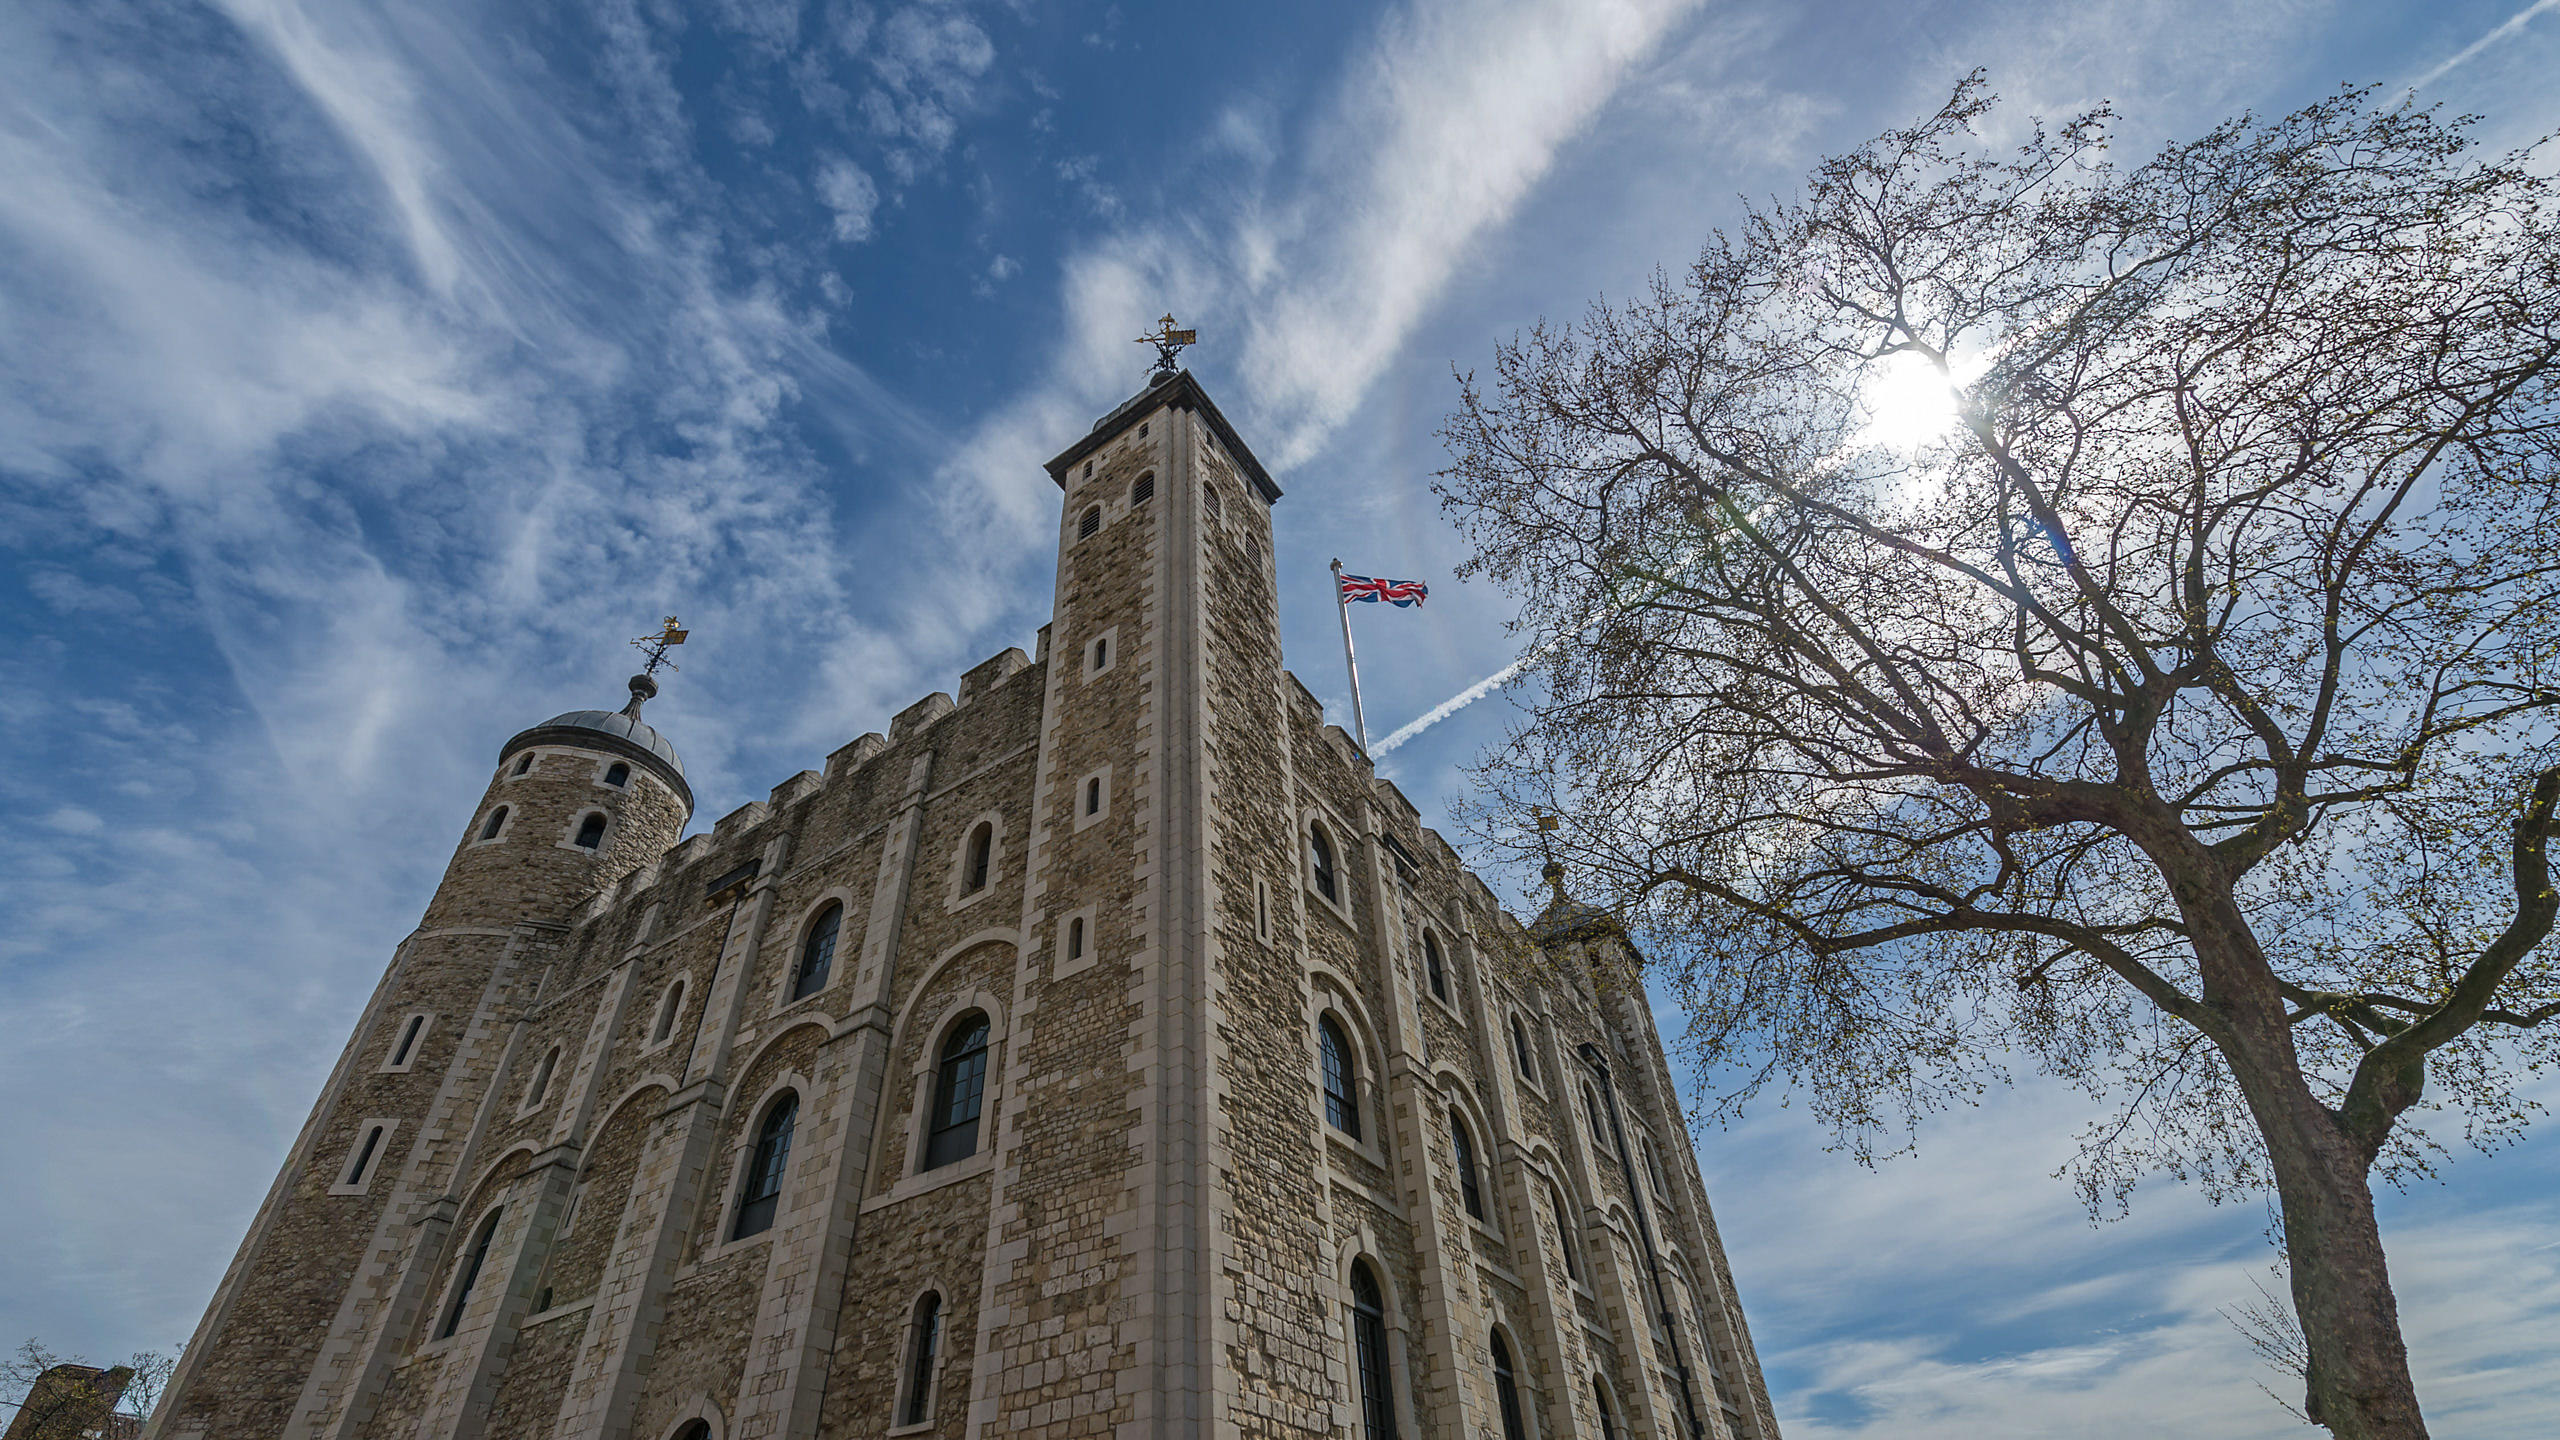 The White Tower; Tower of London